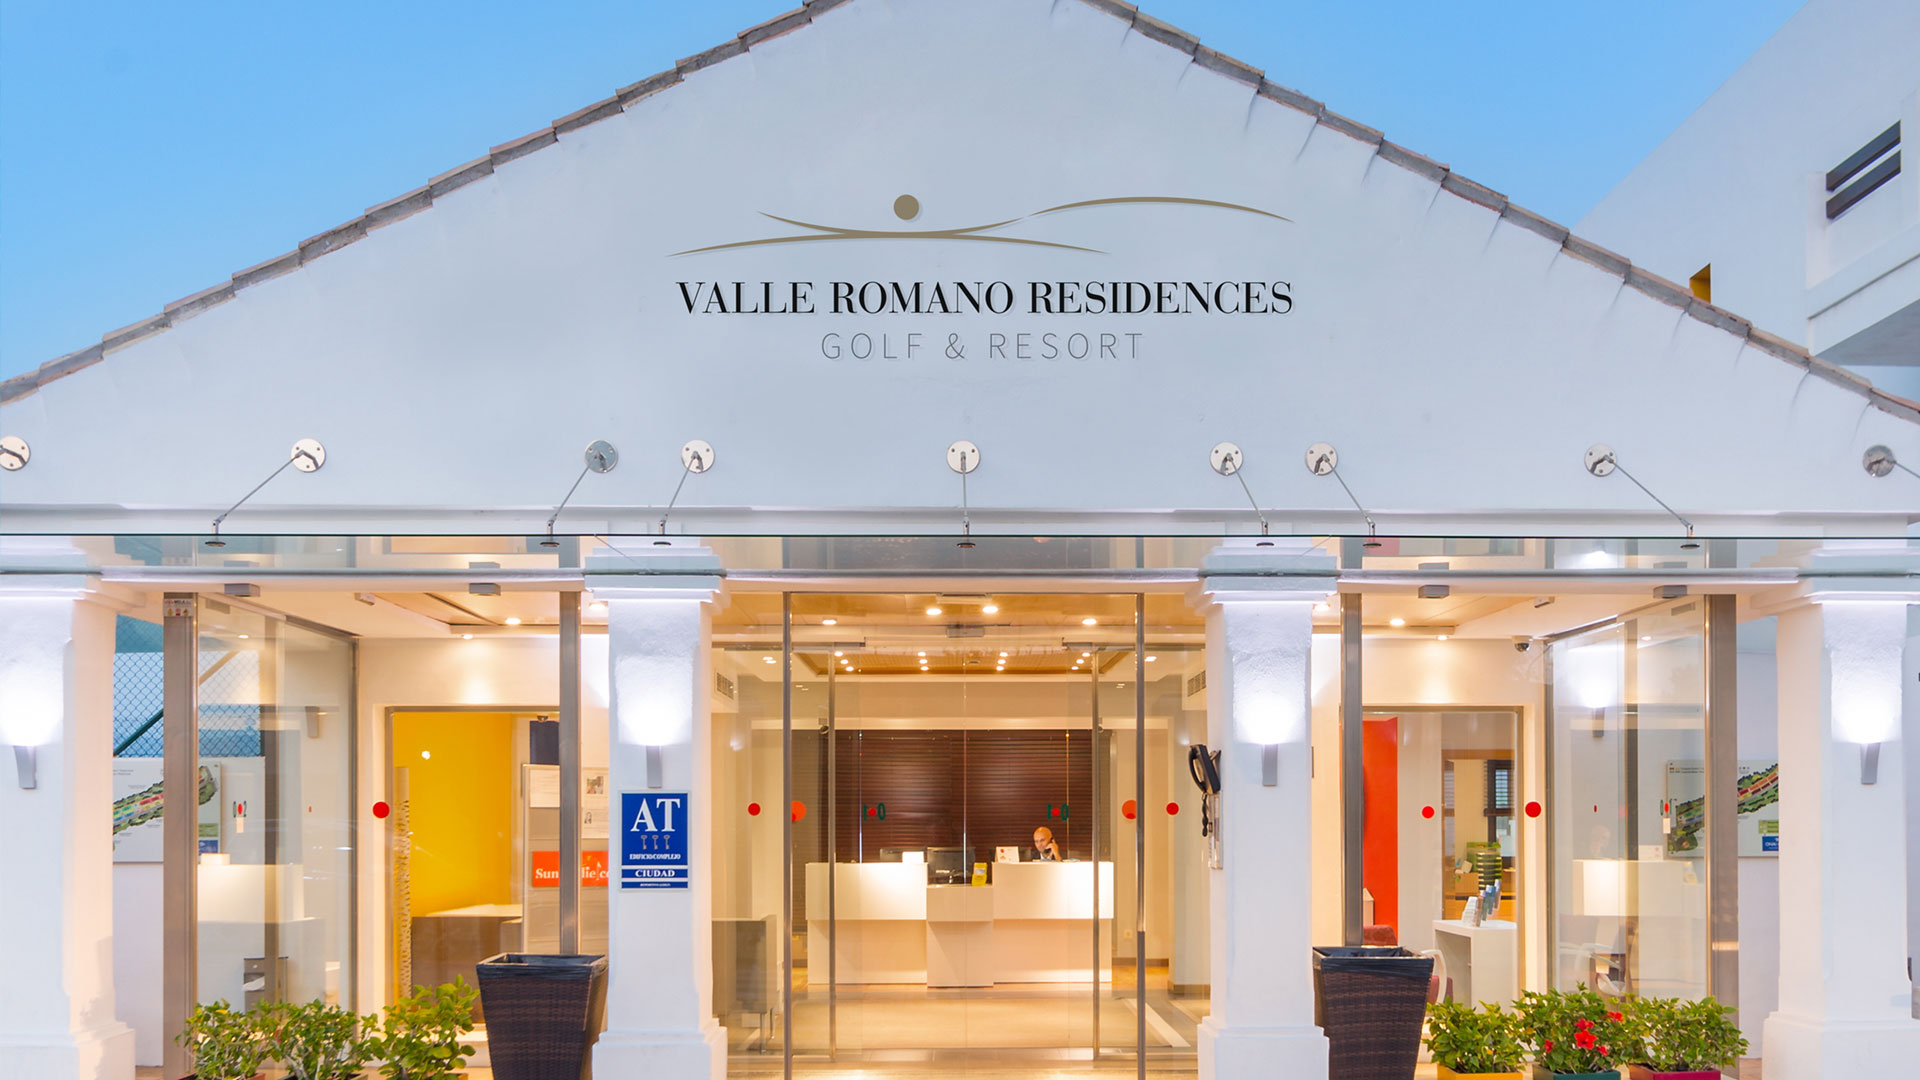 valle-romano-residences-recepcion